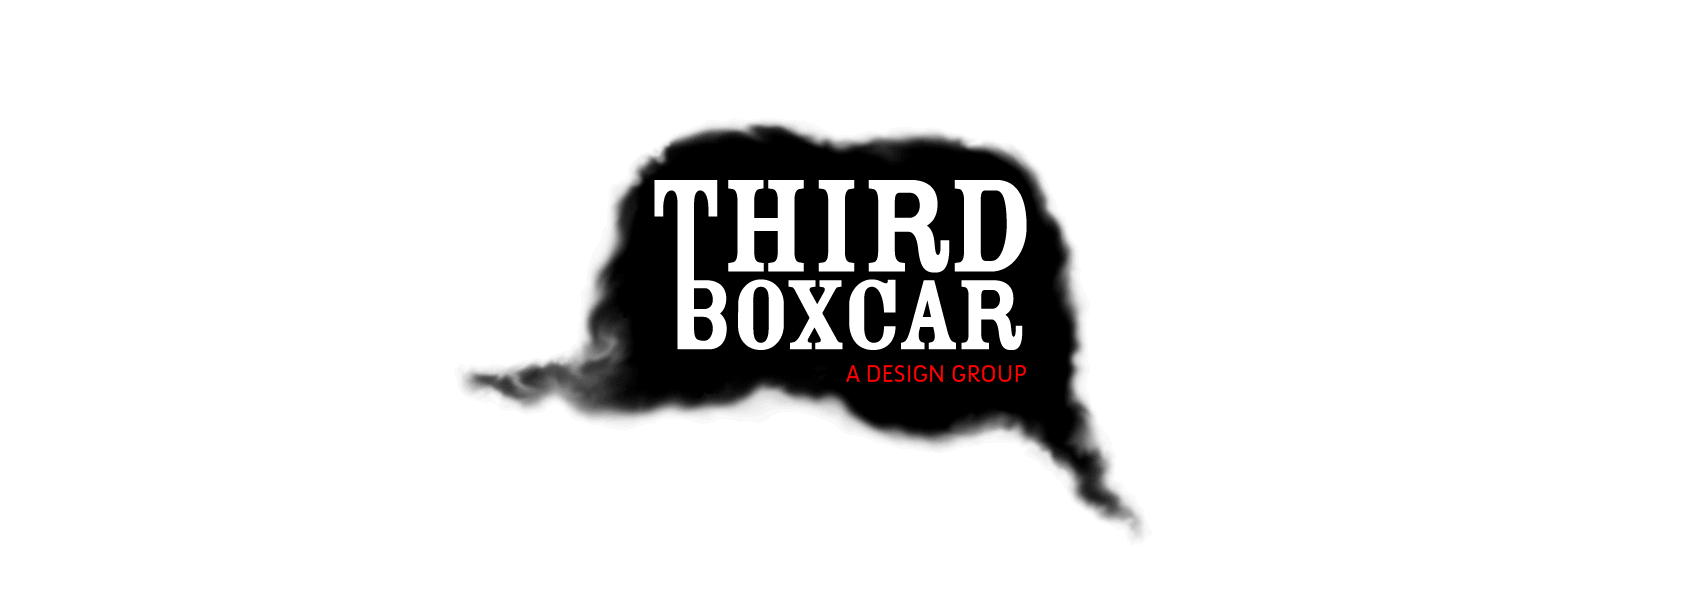 Third Boxcar - a design group